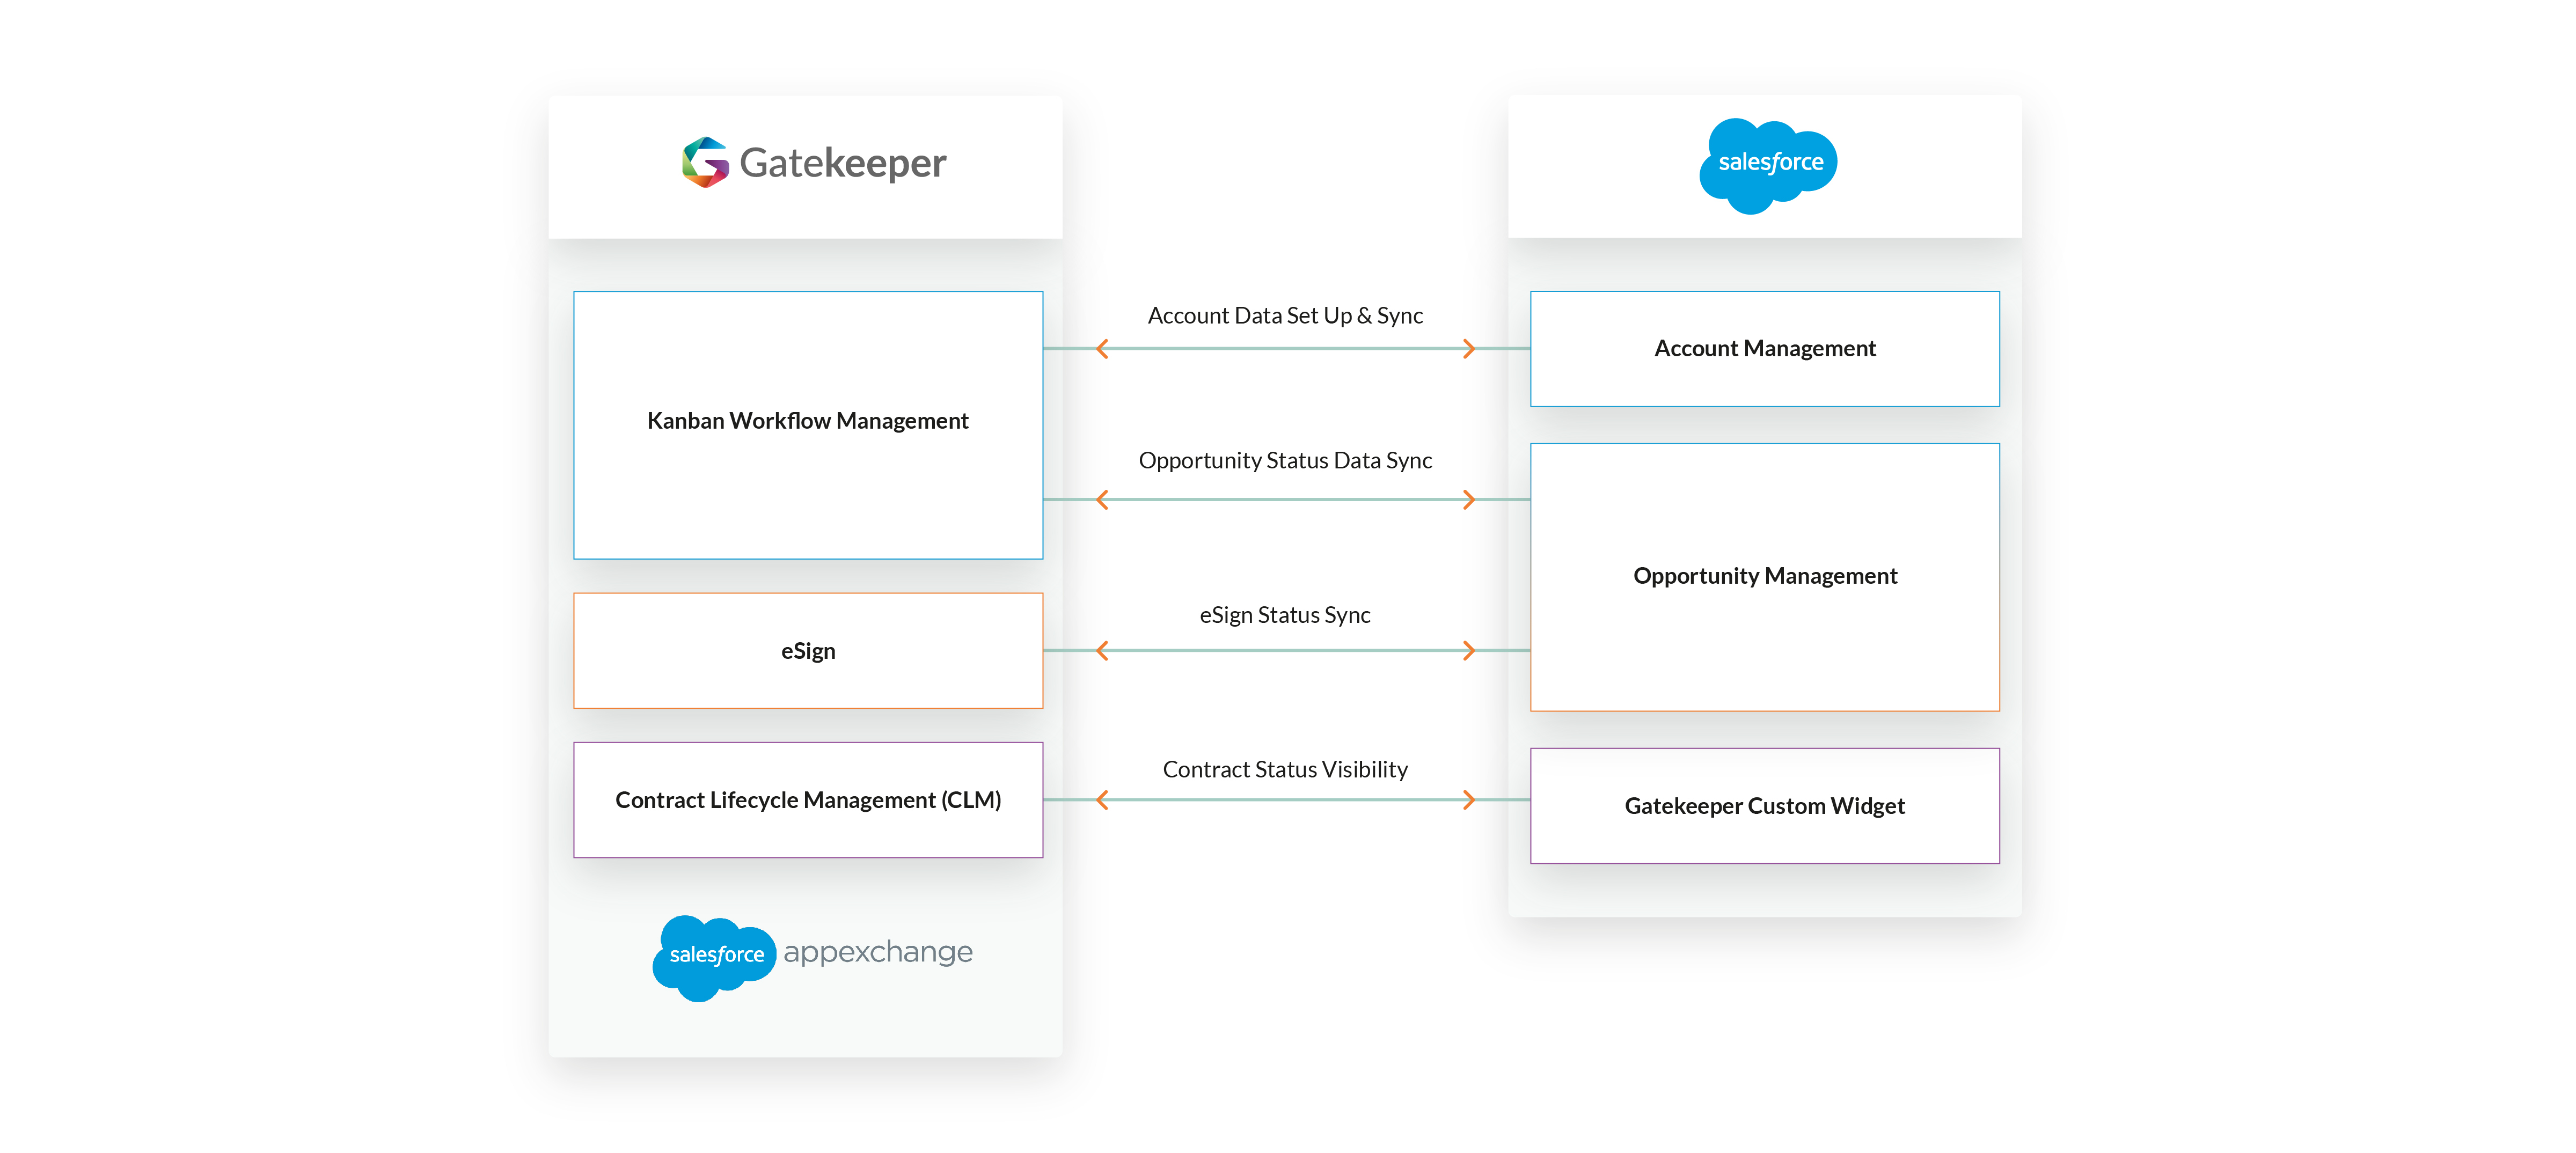 Salesforce-Diagram-v1